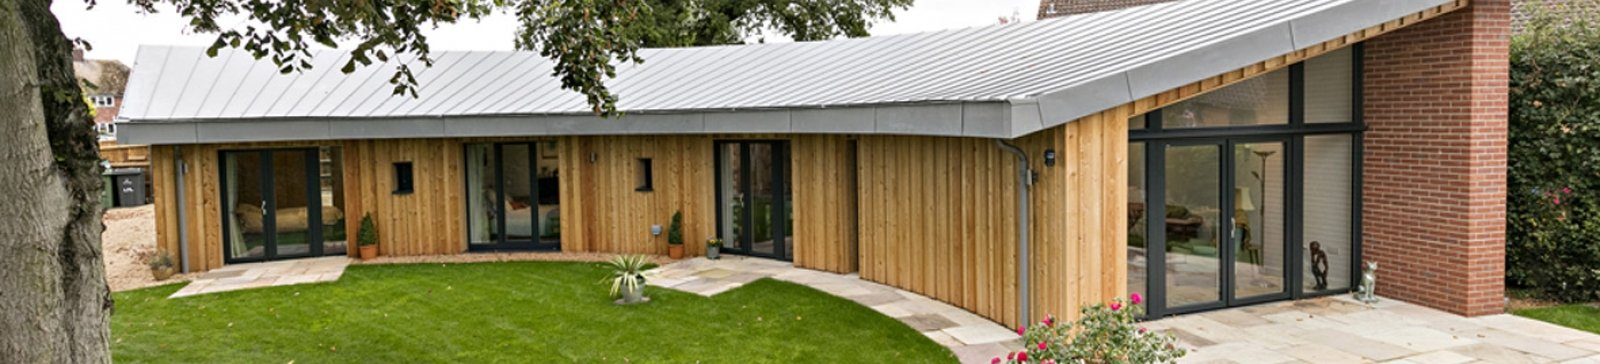 Bungalow built with Celcon Blocks to Passivhaus standards